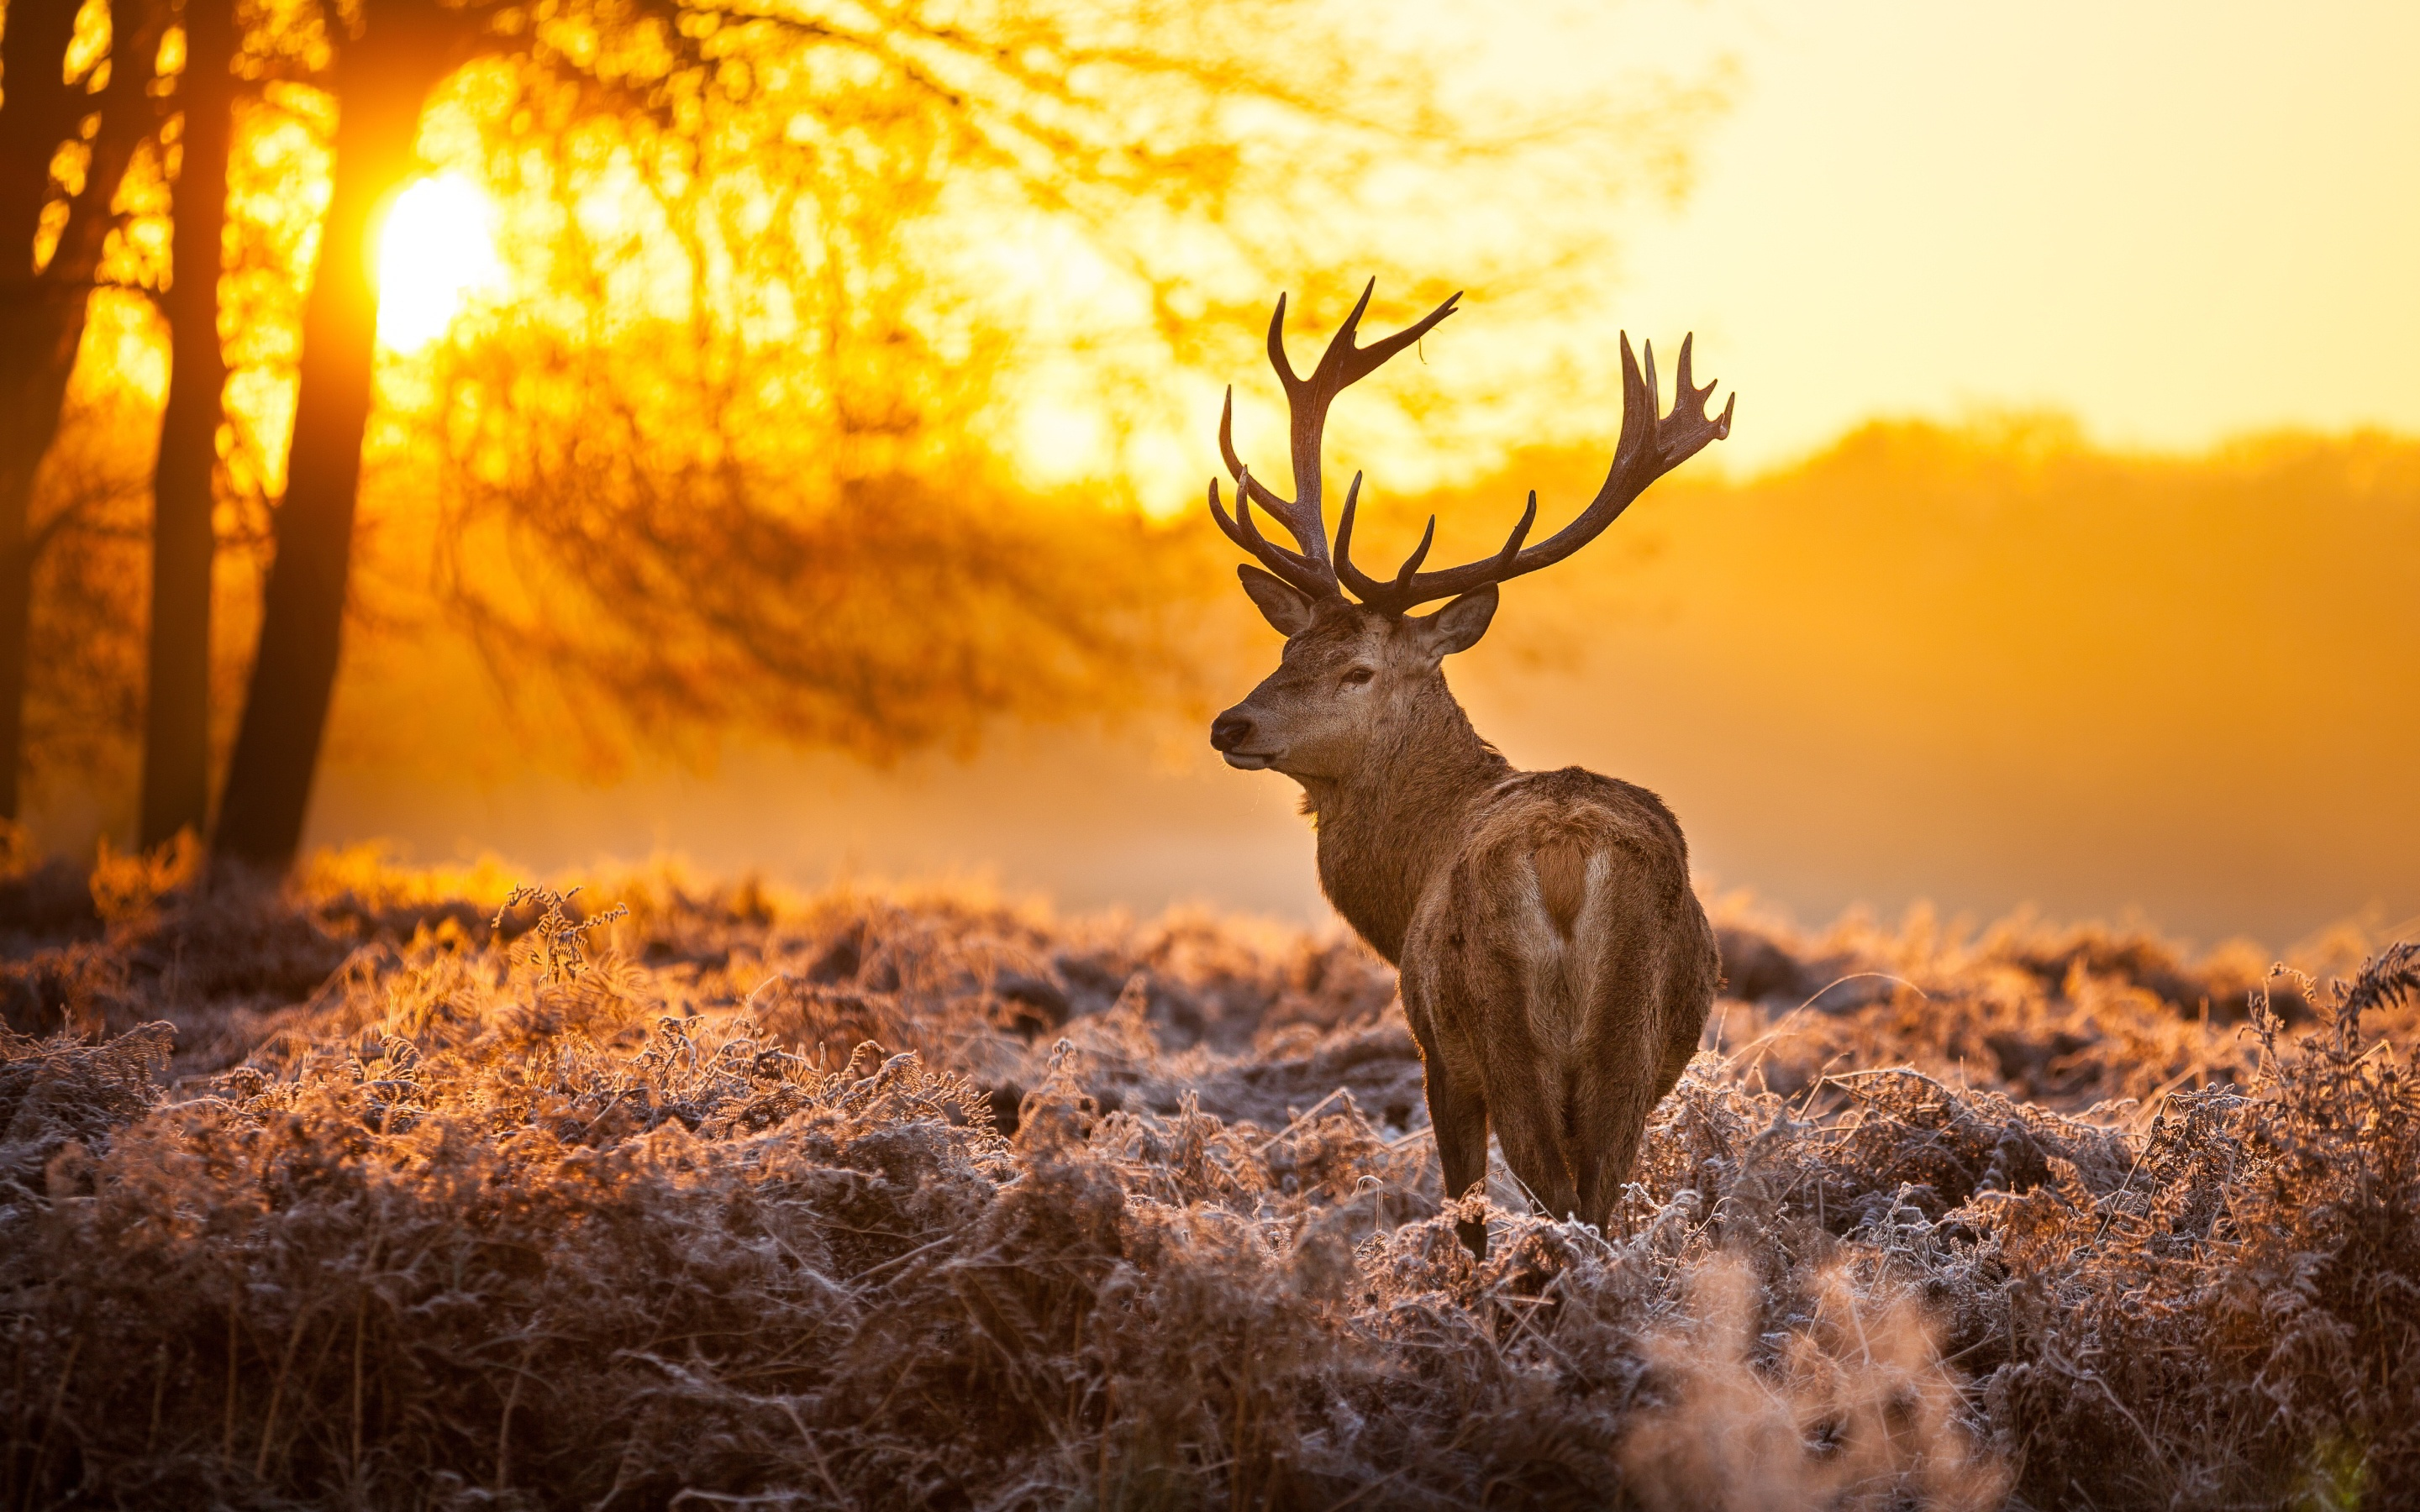 """Download the following Gorgeous Deer Wallpaper 1915 by clicking the button positioned underneath the """"Download Wallpaper"""" section."""